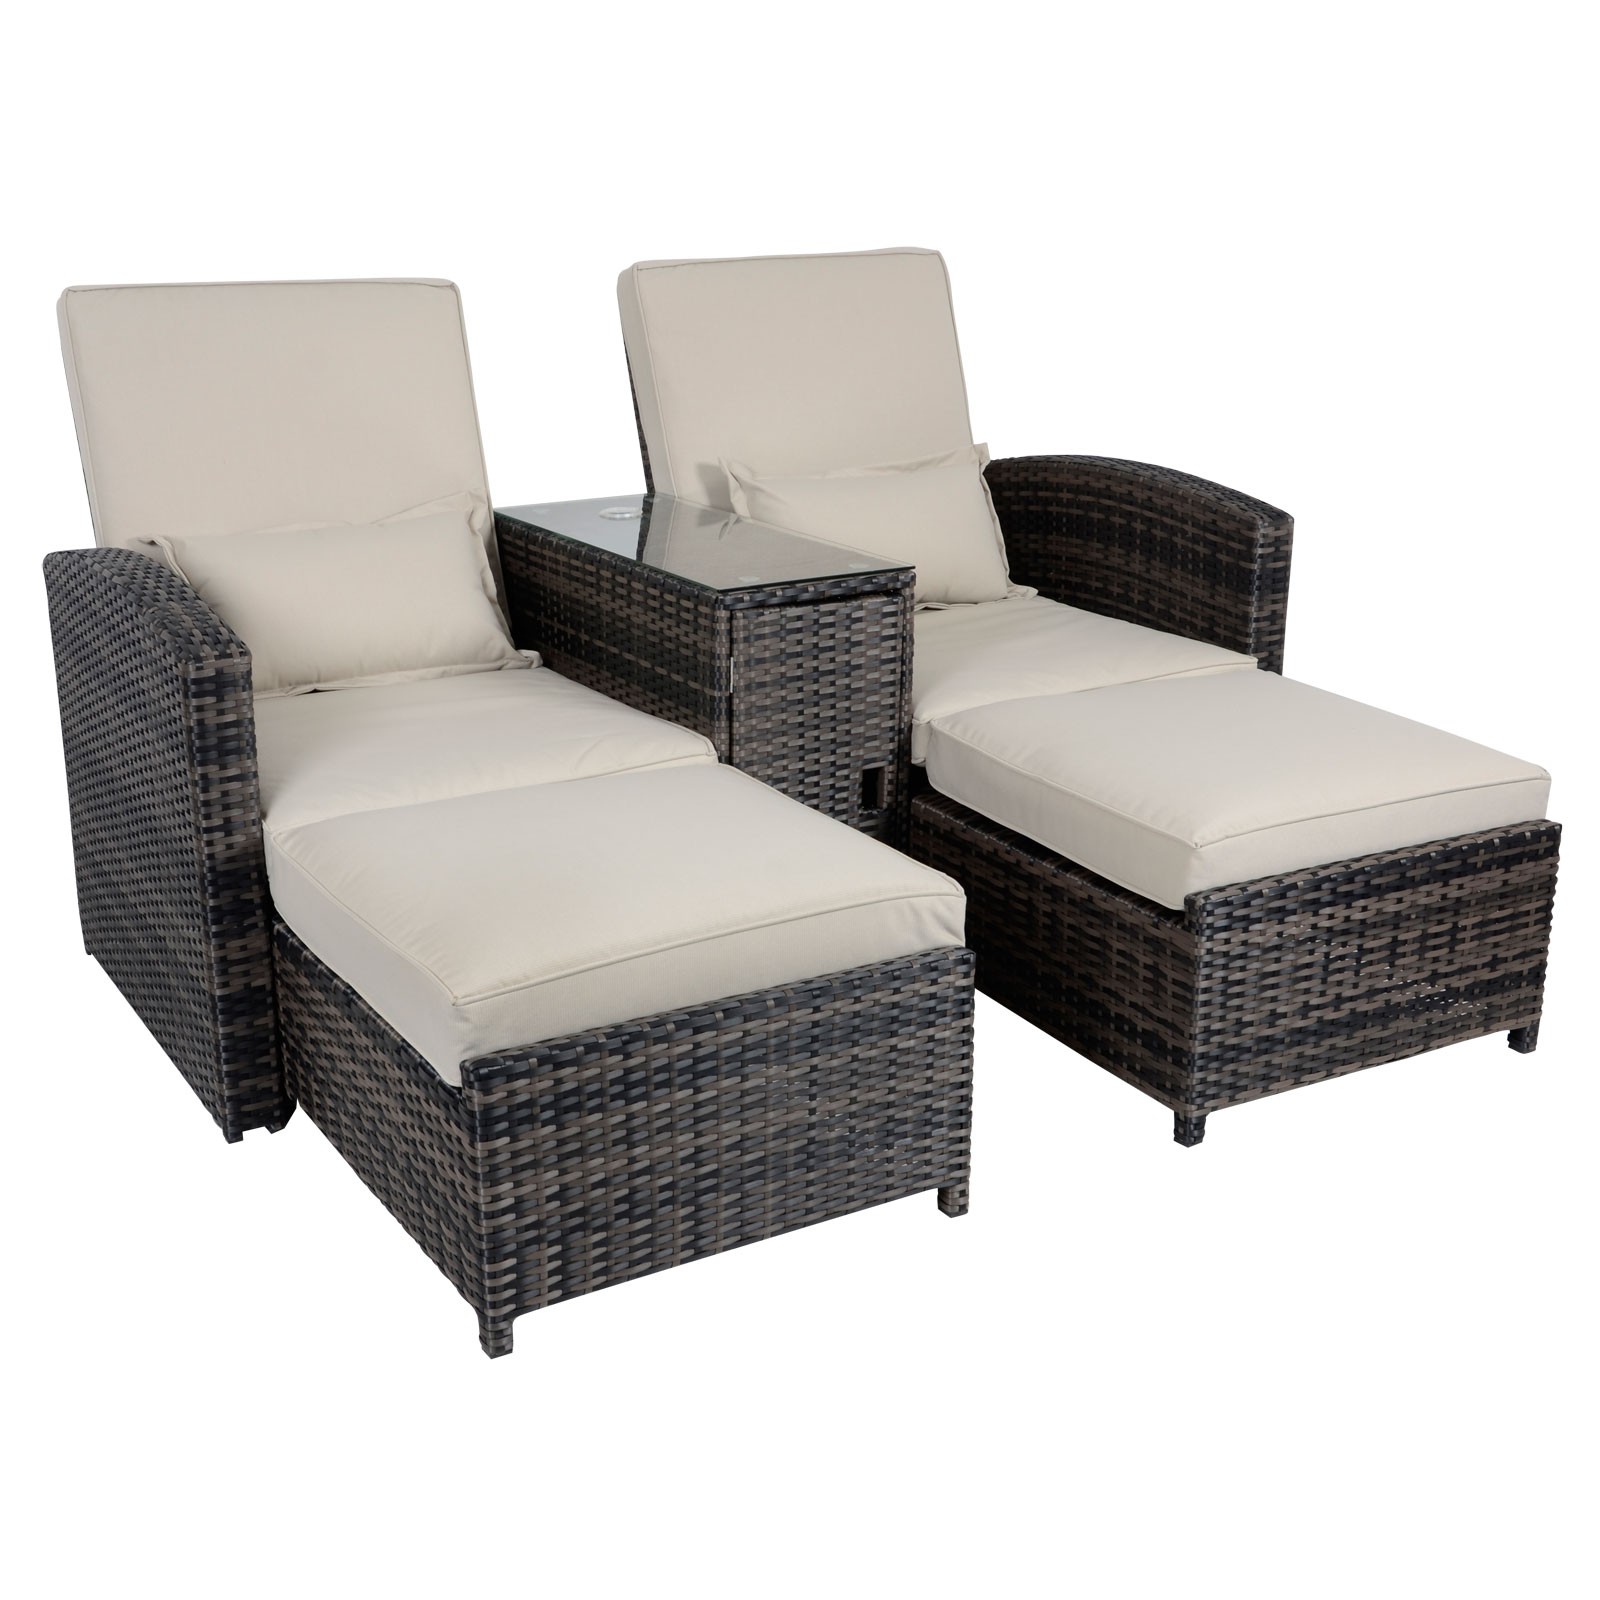 outdoor recliner chairs uk farm house chair antigua rattan wicker reclining sun lounger companion